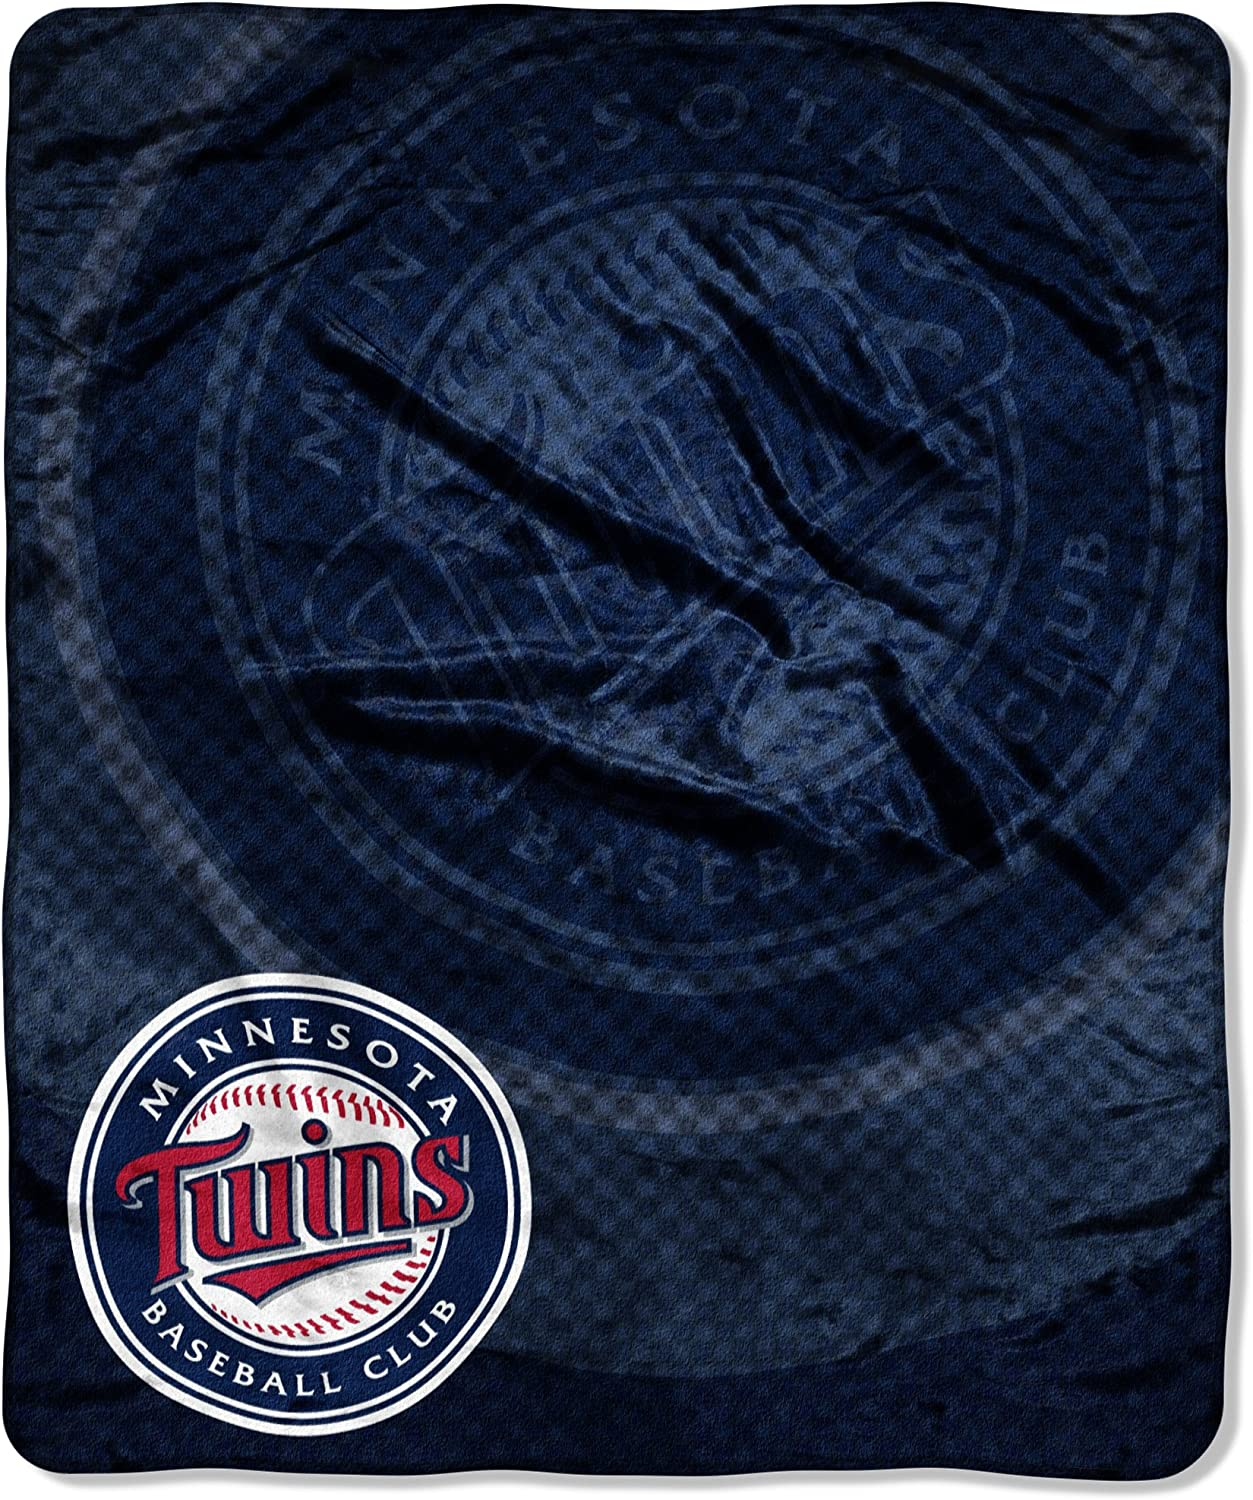 """Officially Licensed MLB Retro Raschel Throw Blanket, Soft & Cozy, Washable, Throws & Bedding, 50"""" x 60"""""""